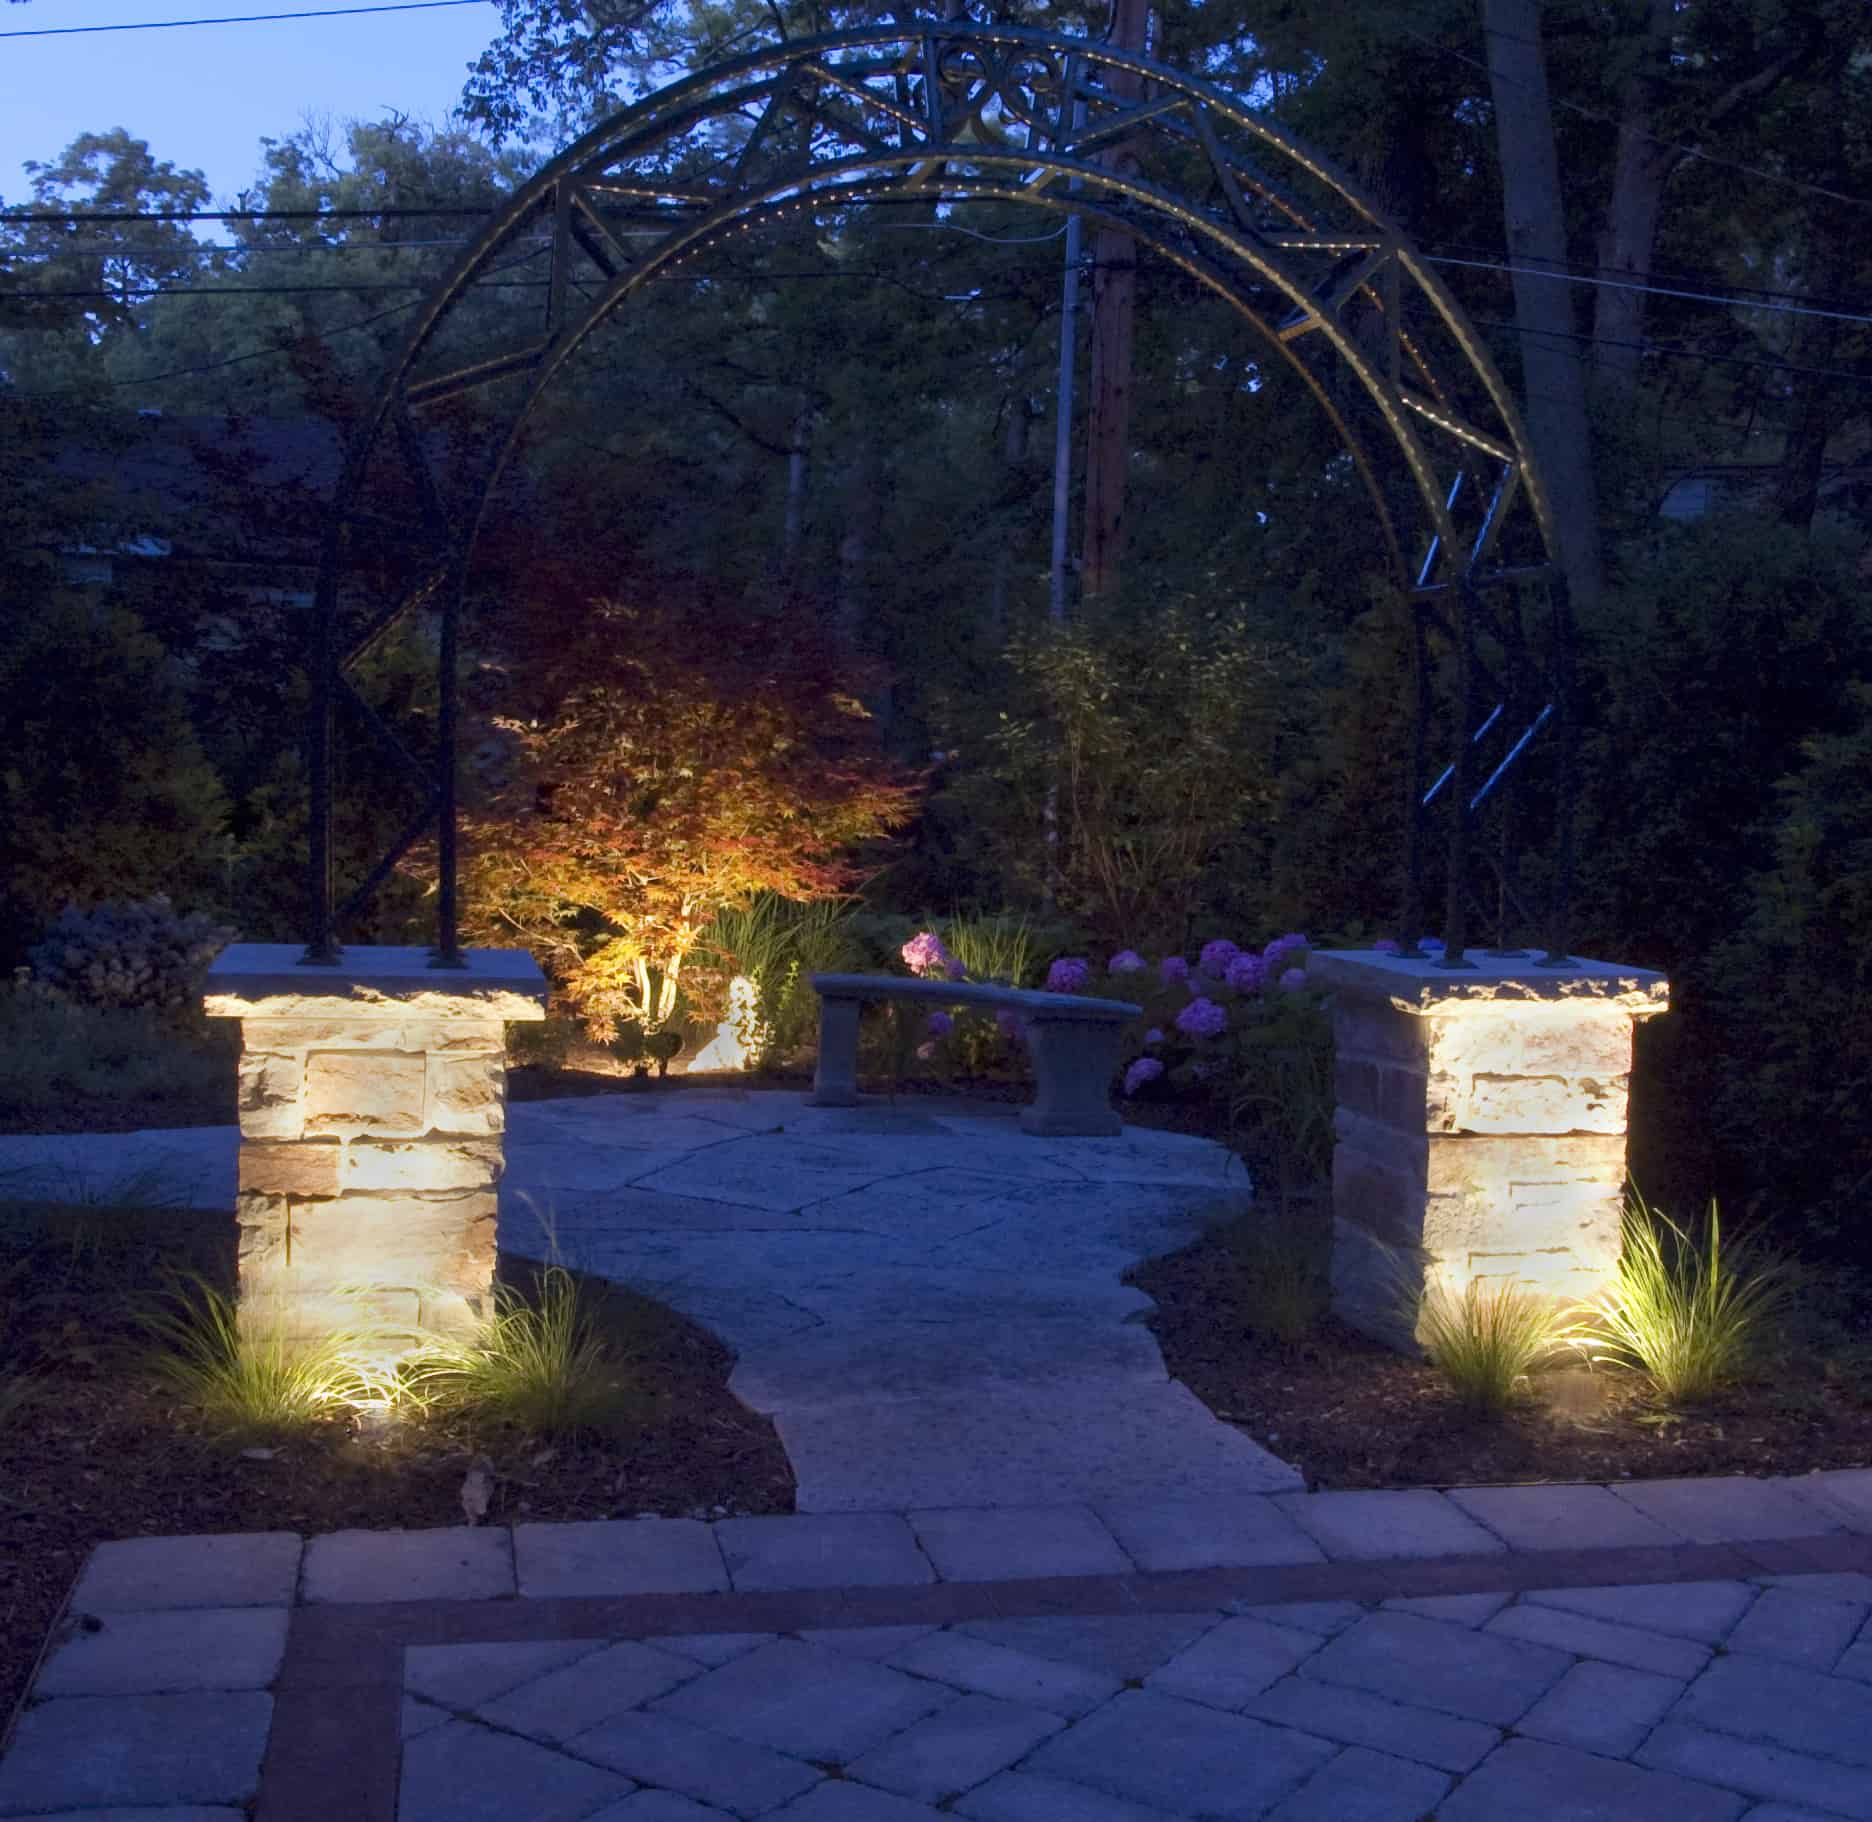 Lighting Chicago Il: Hardscapes - Outdoor Lighting In Chicago, IL